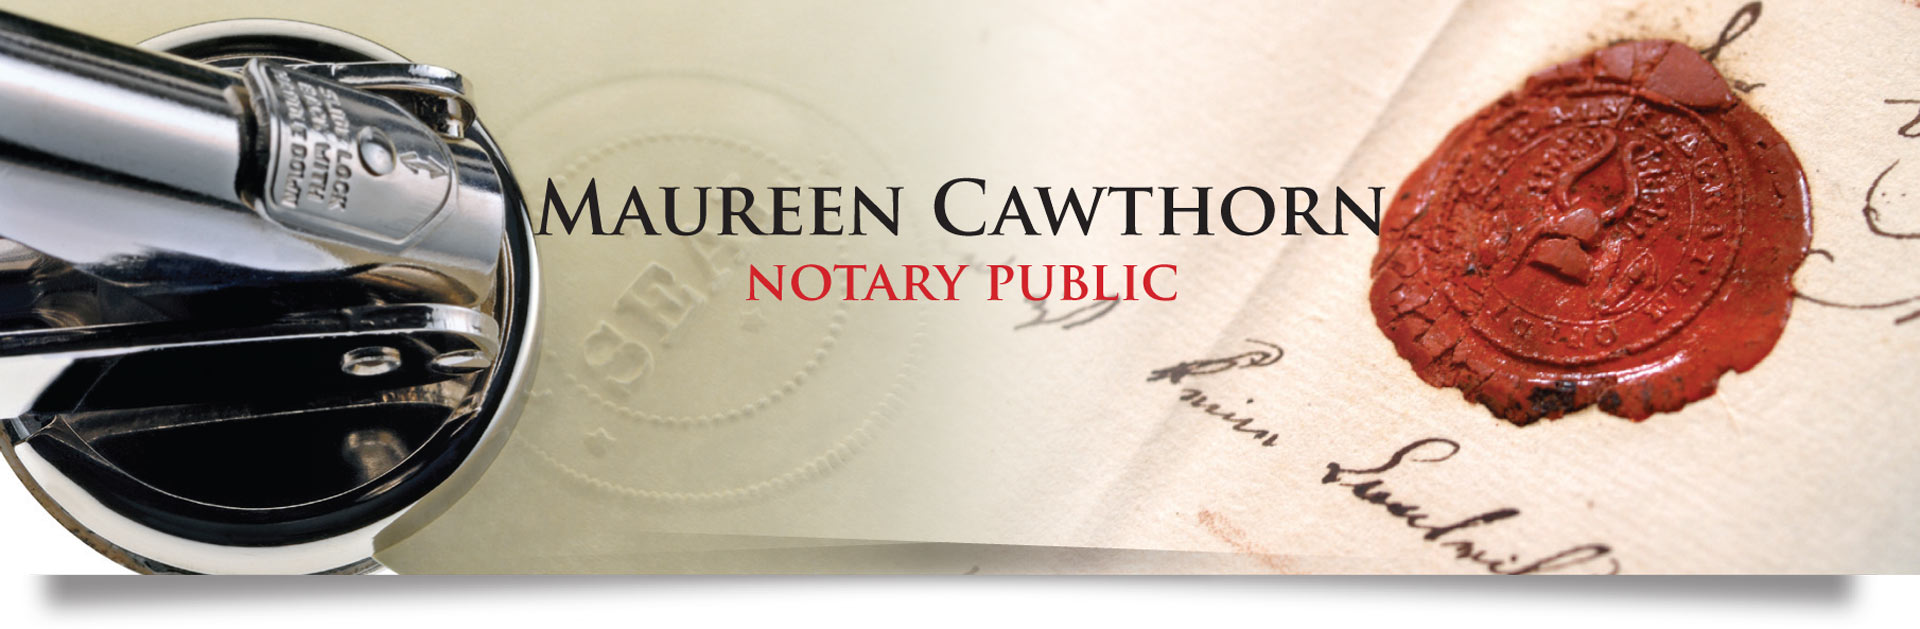 notary public halifax